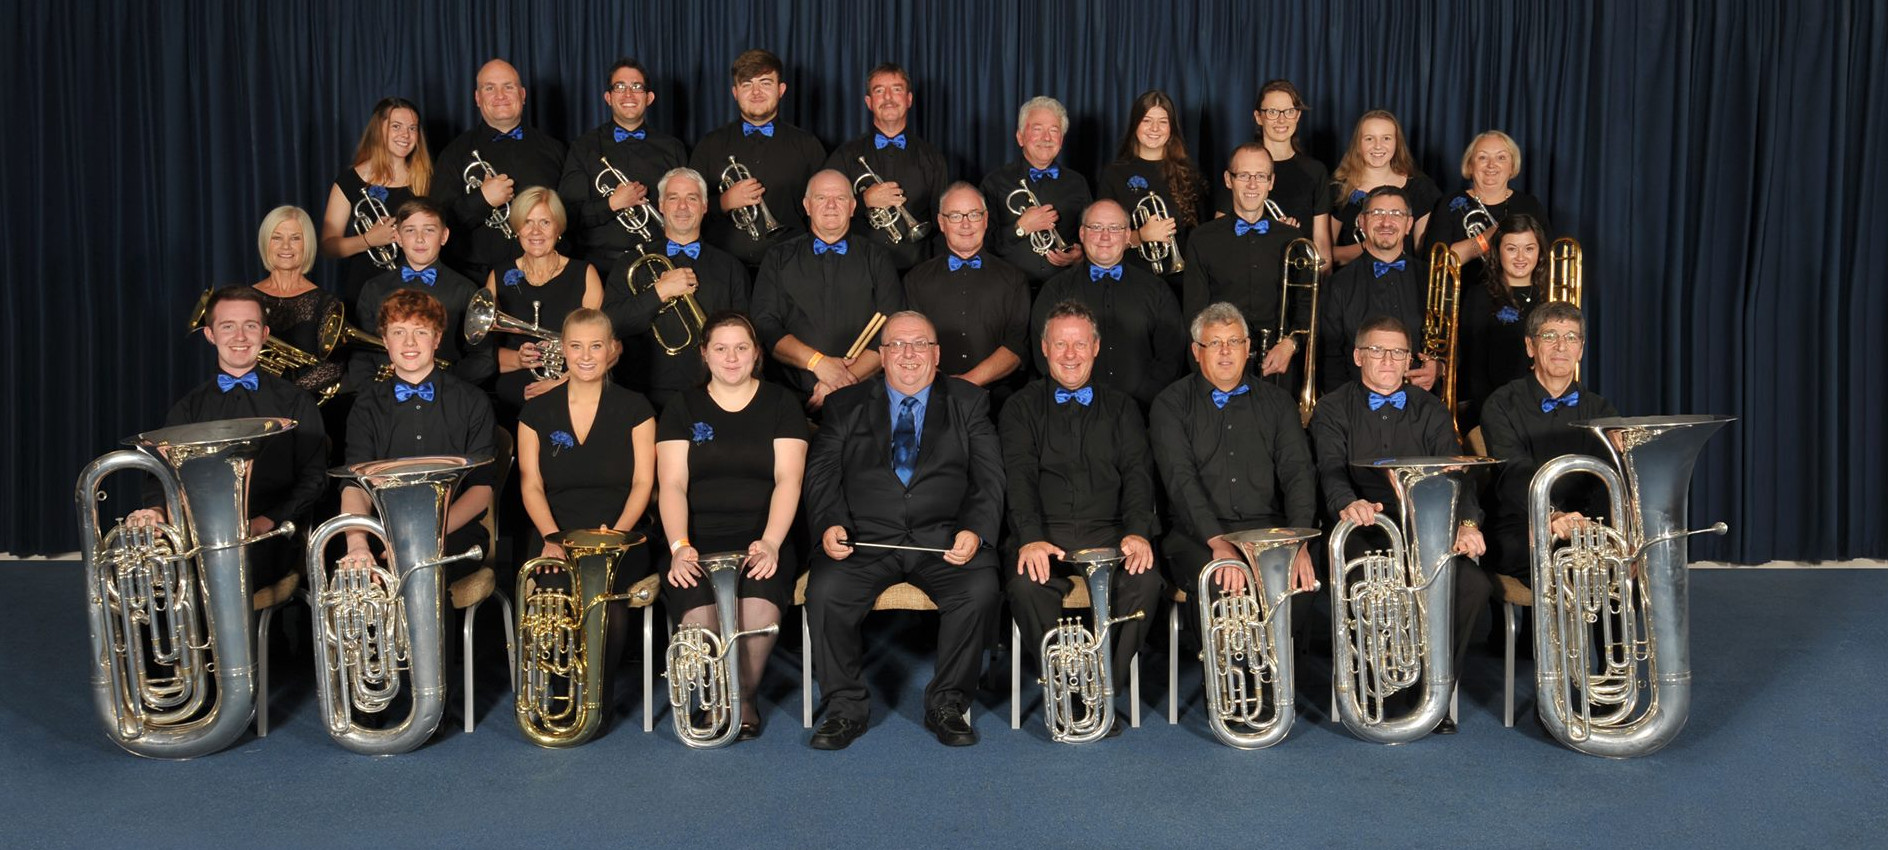 Shirland Welfare Band at the National Brass Band Championships 2017